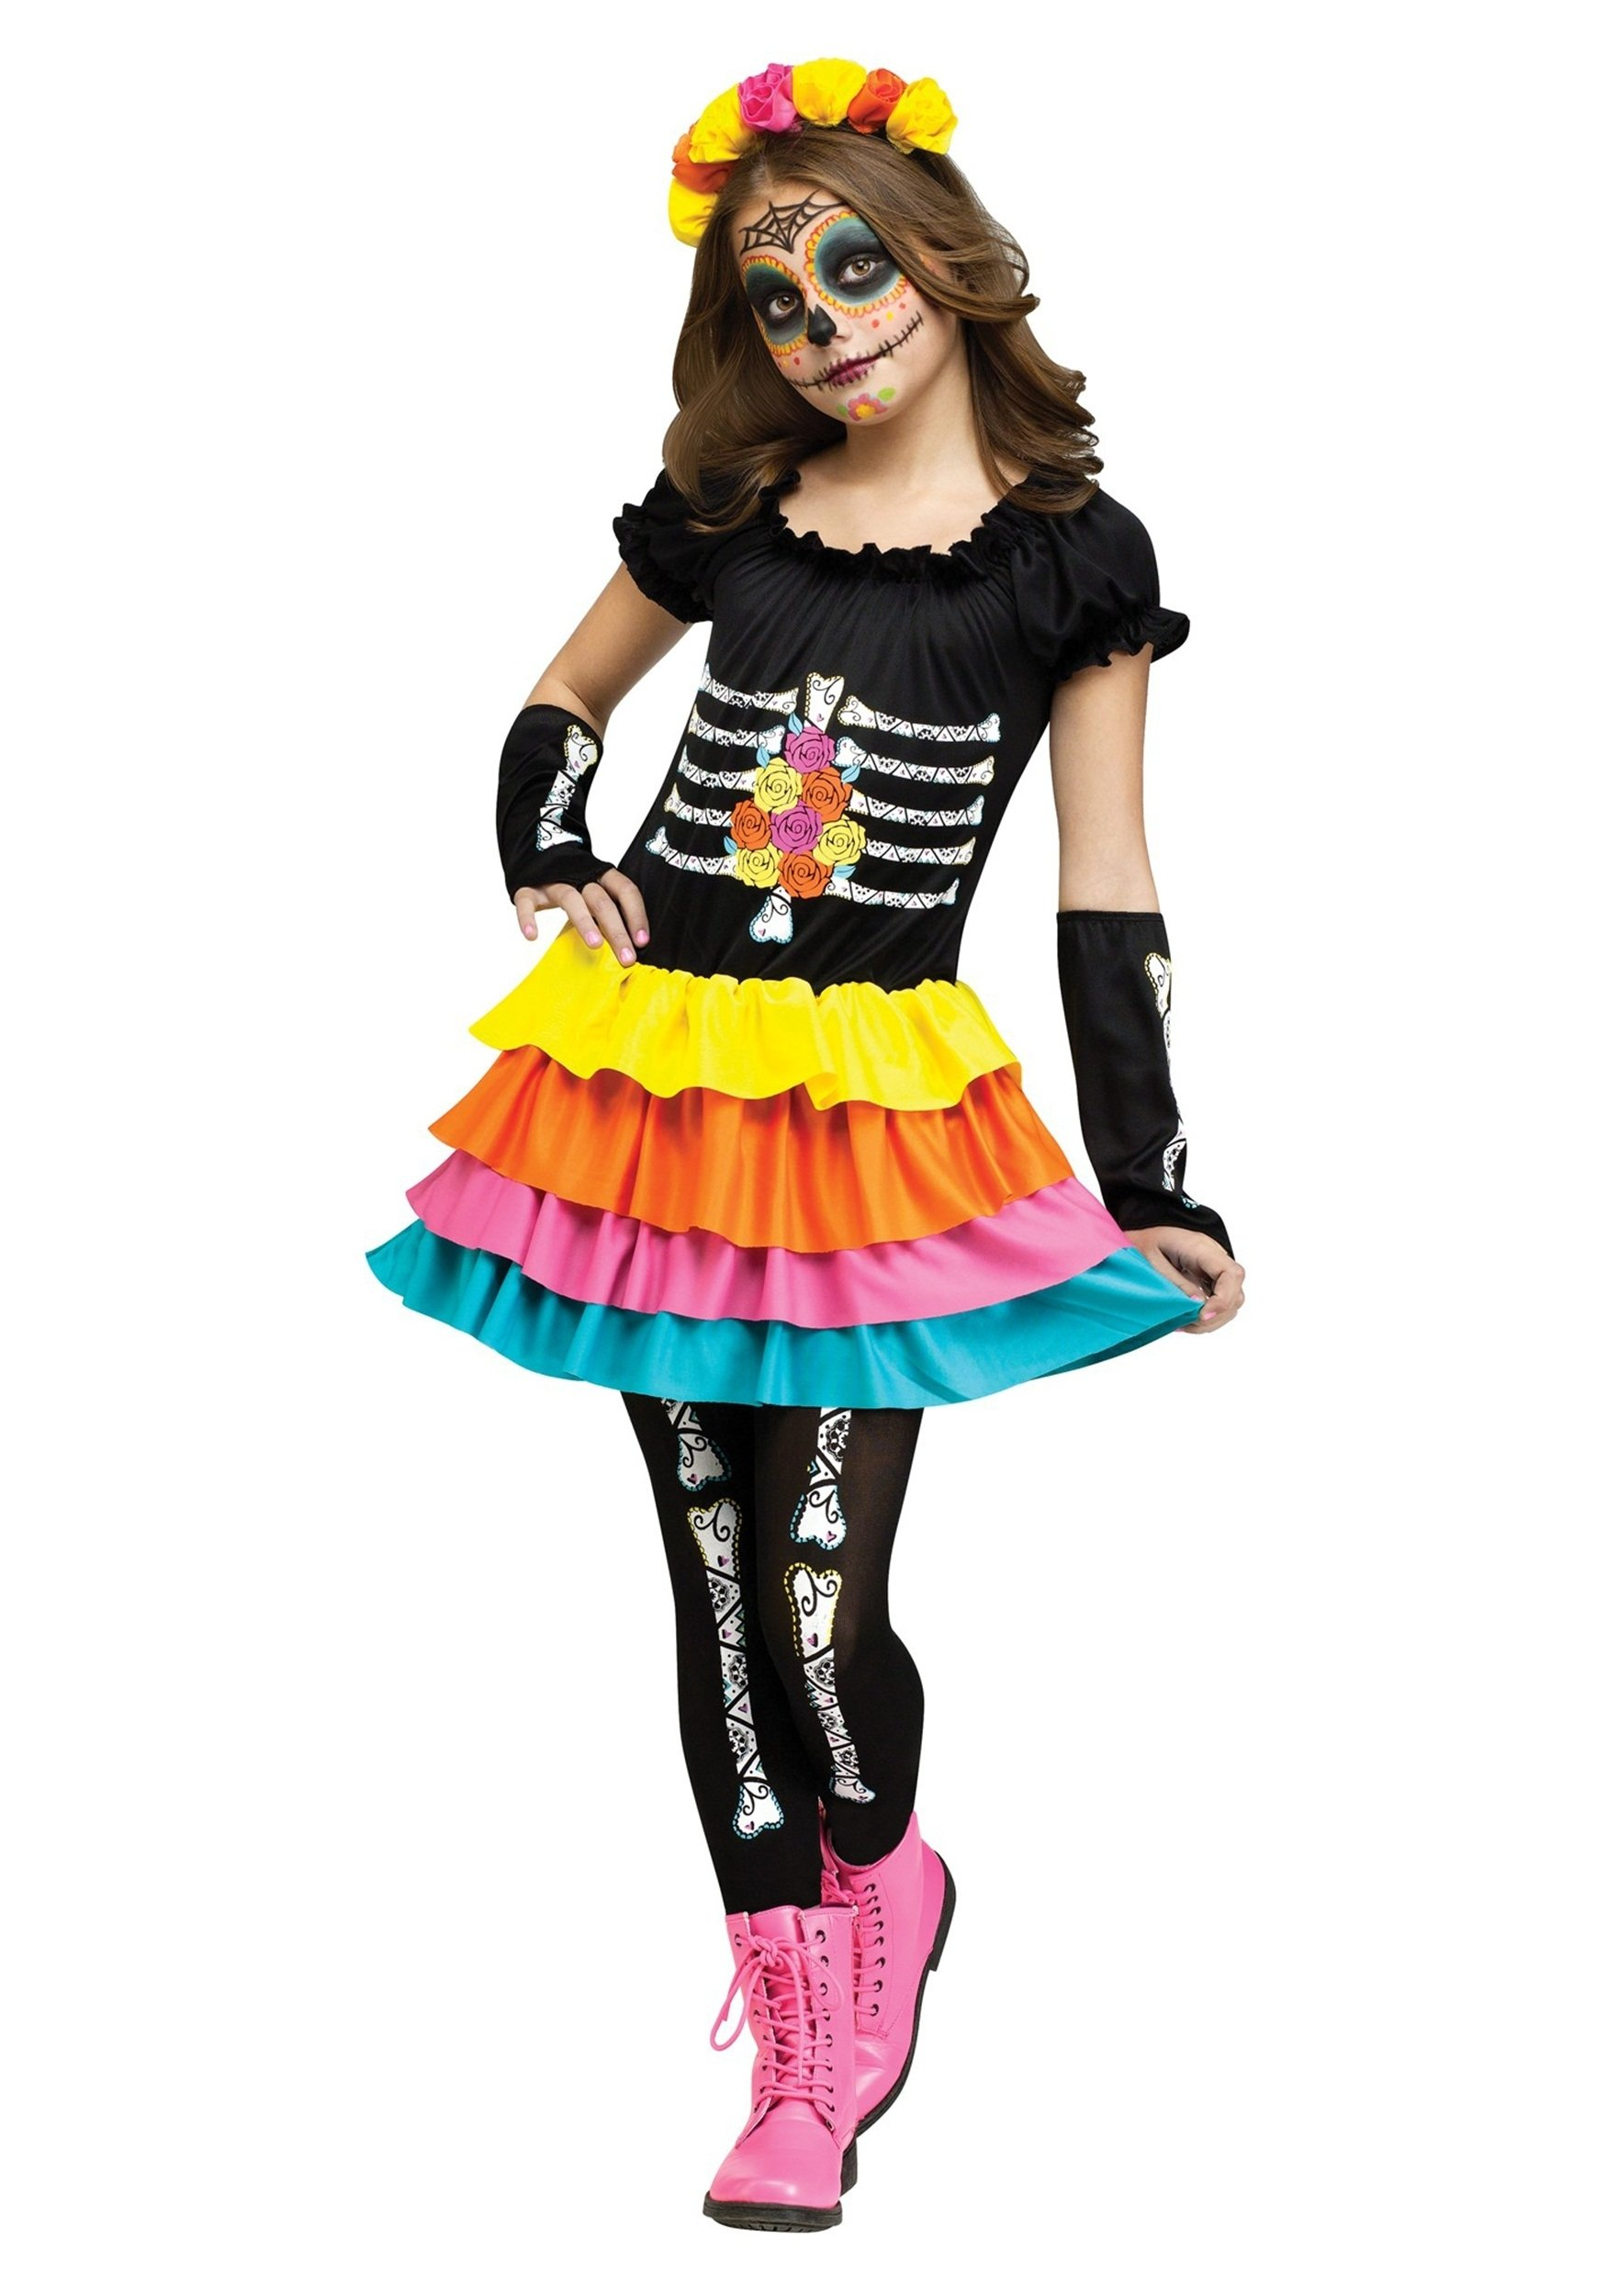 10 Great Day Of The Dead Halloween Costume Ideas dia de los muertos child costume 2020